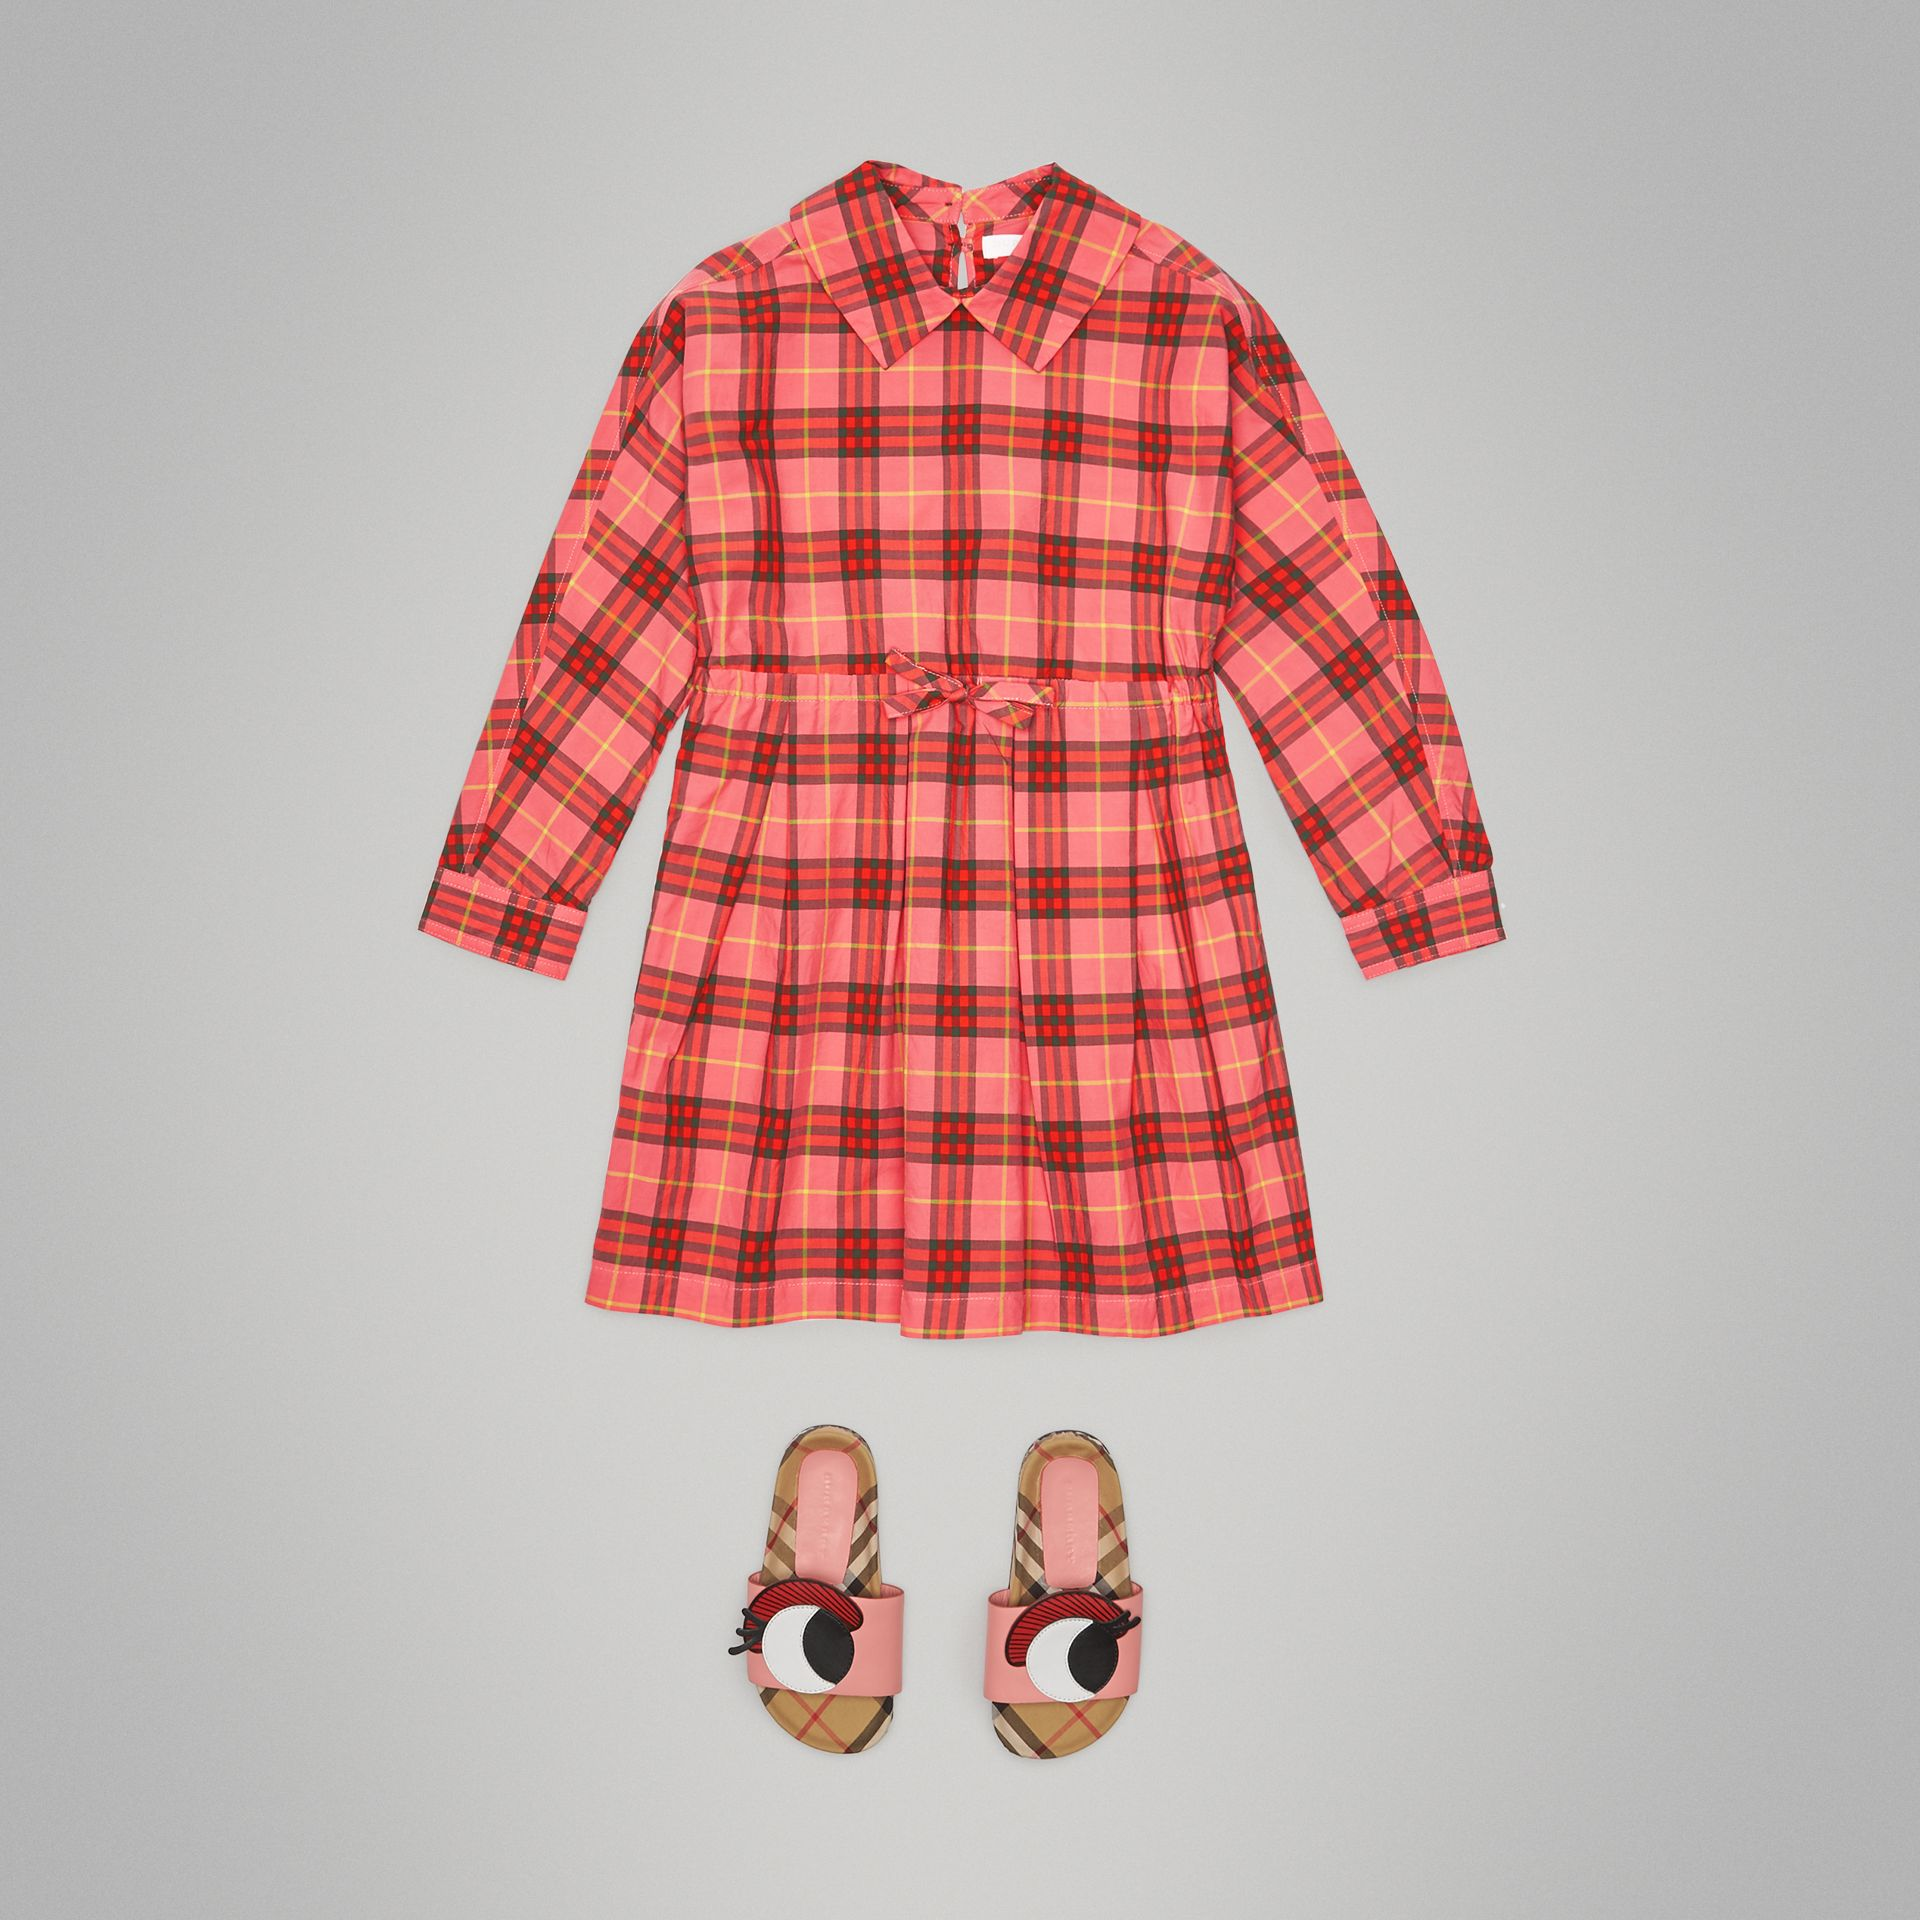 Robe à cordon de serrage en coton à motif check (Rouge Corail) - Fille | Burberry - photo de la galerie 2